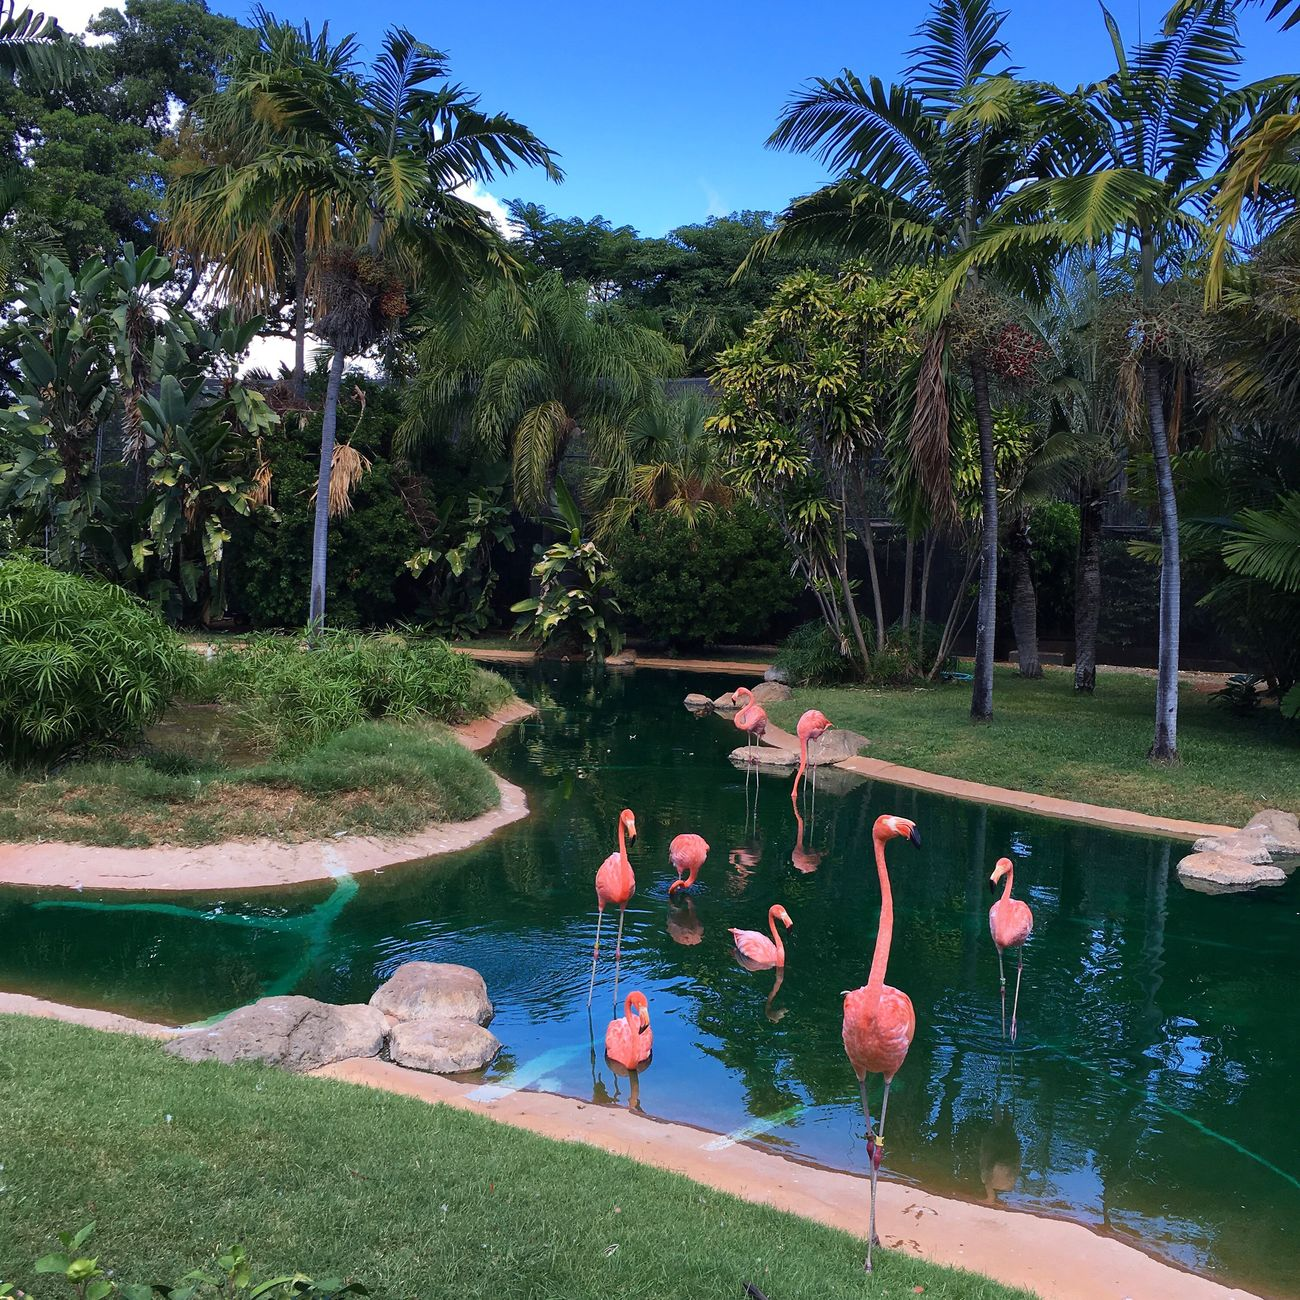 Hawaii Flamingo Animal Themes Flock Of Birds Nature Beauty In Nature Pond Water Zoology Green Color Park - Man Made Space Animals In The Wild Wildlife Bird Grass Tree Tranquil Scene First Eyeem Photo